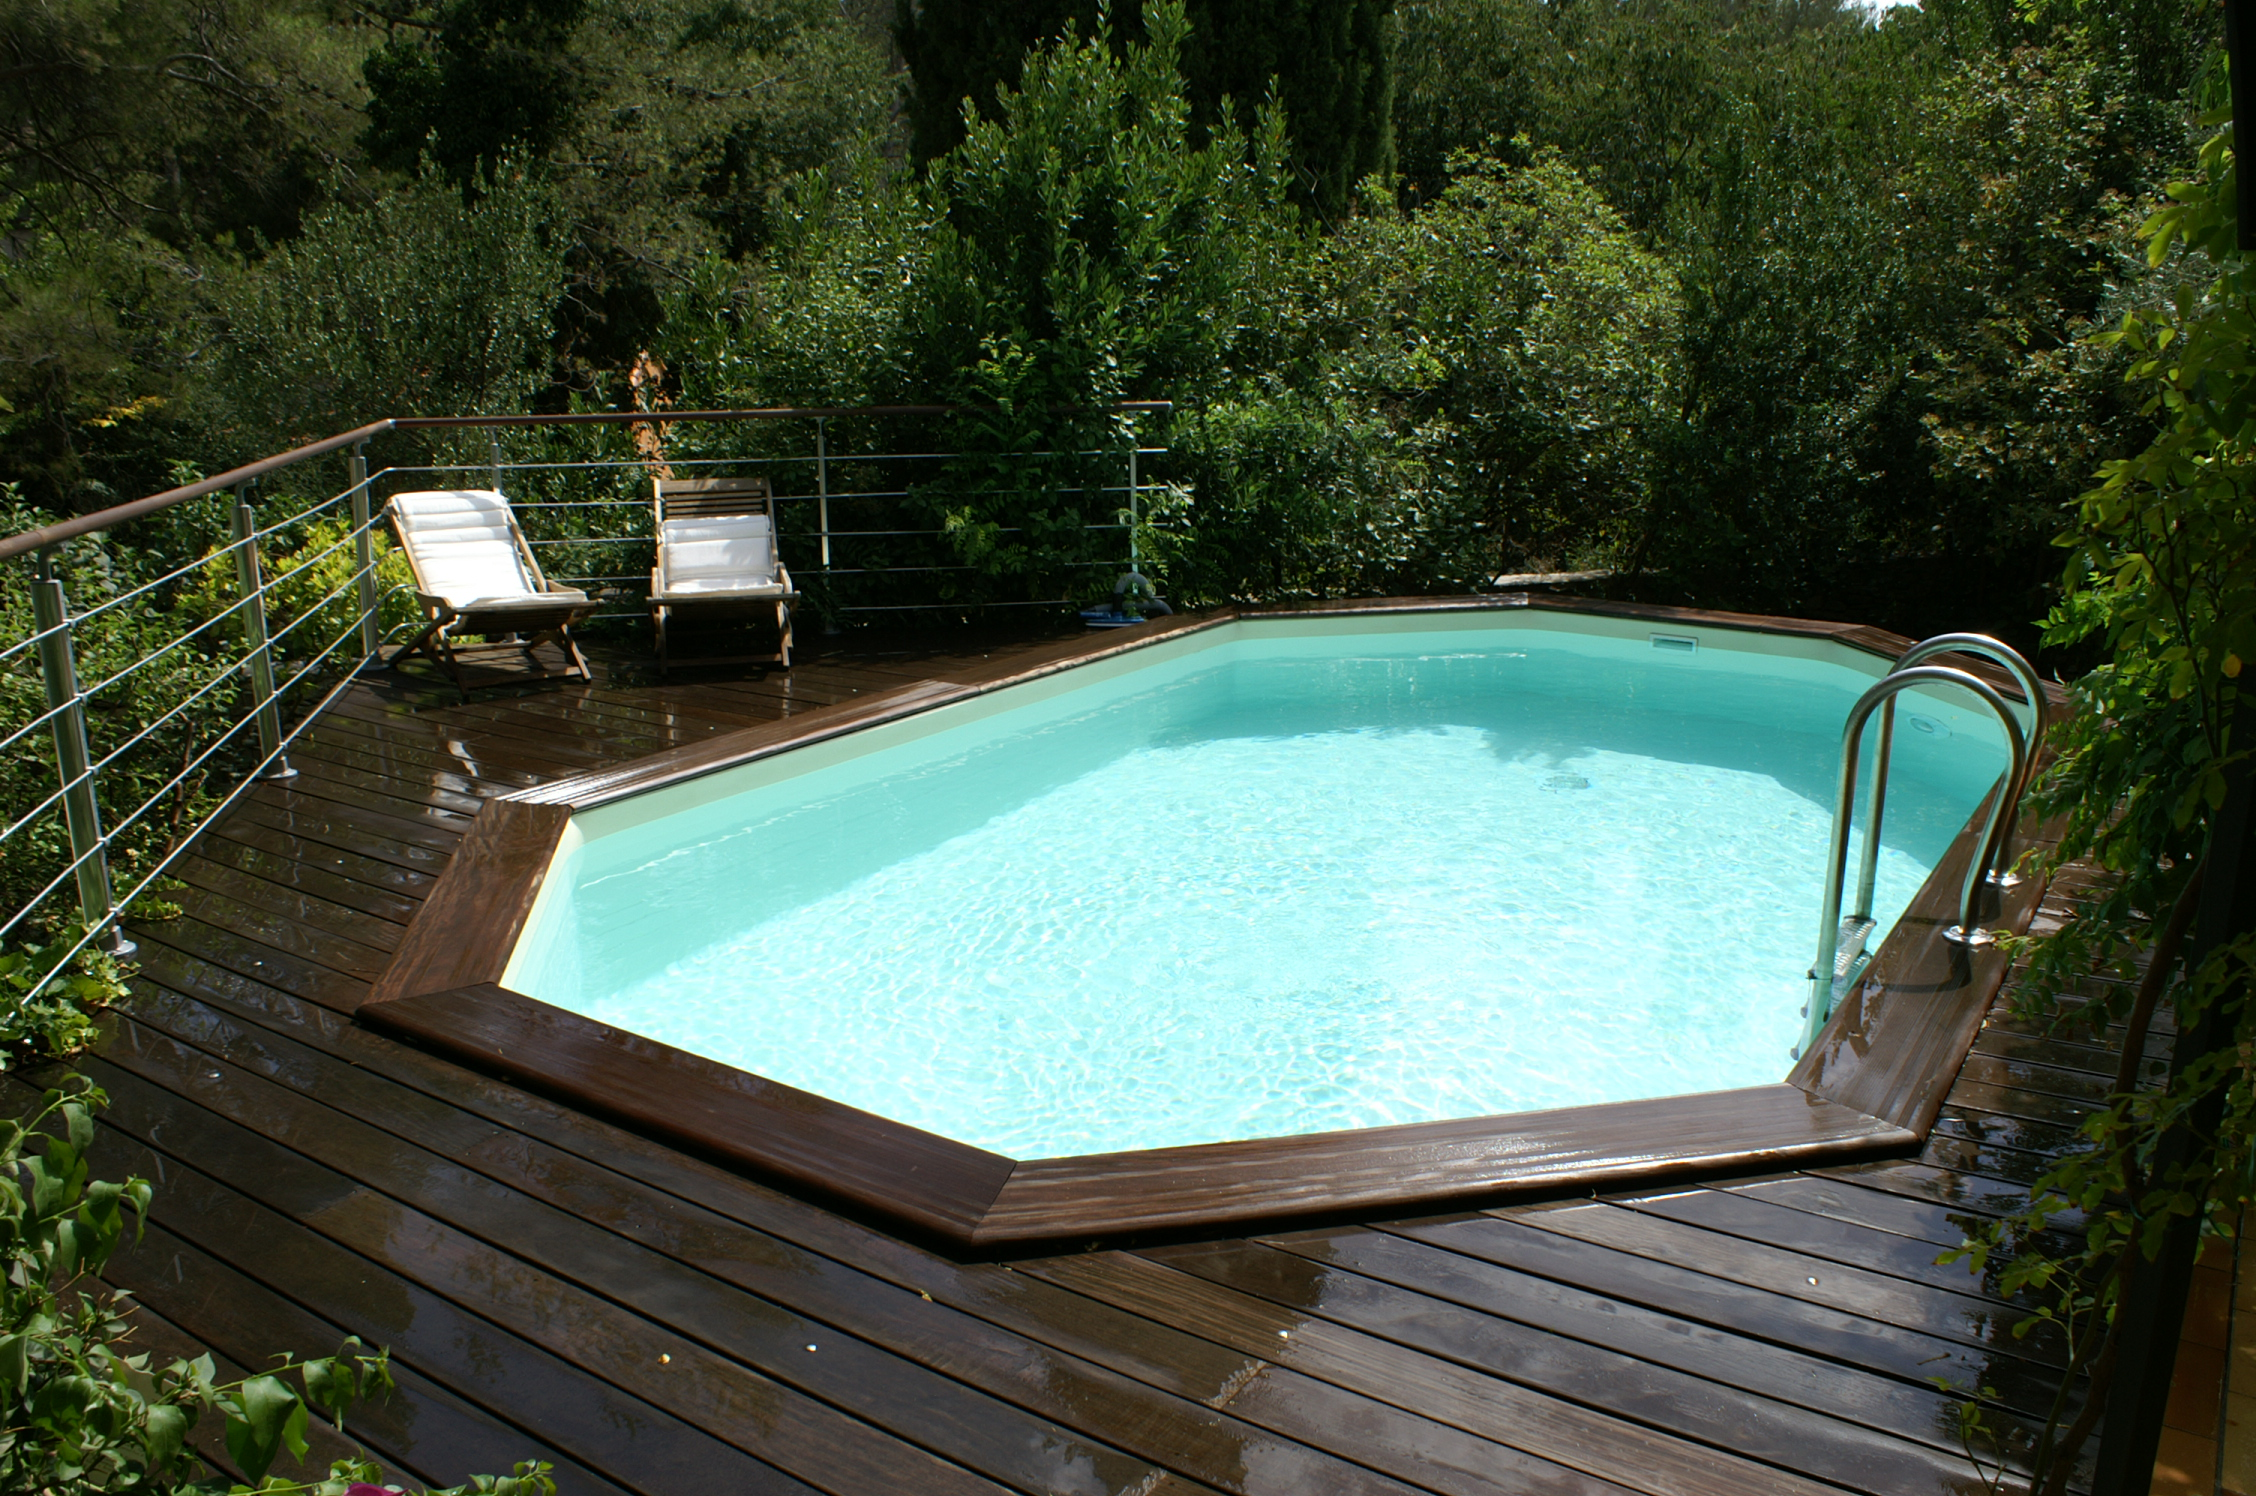 Amenagement piscine bois hors sol id es for Piscine hors sol enterree